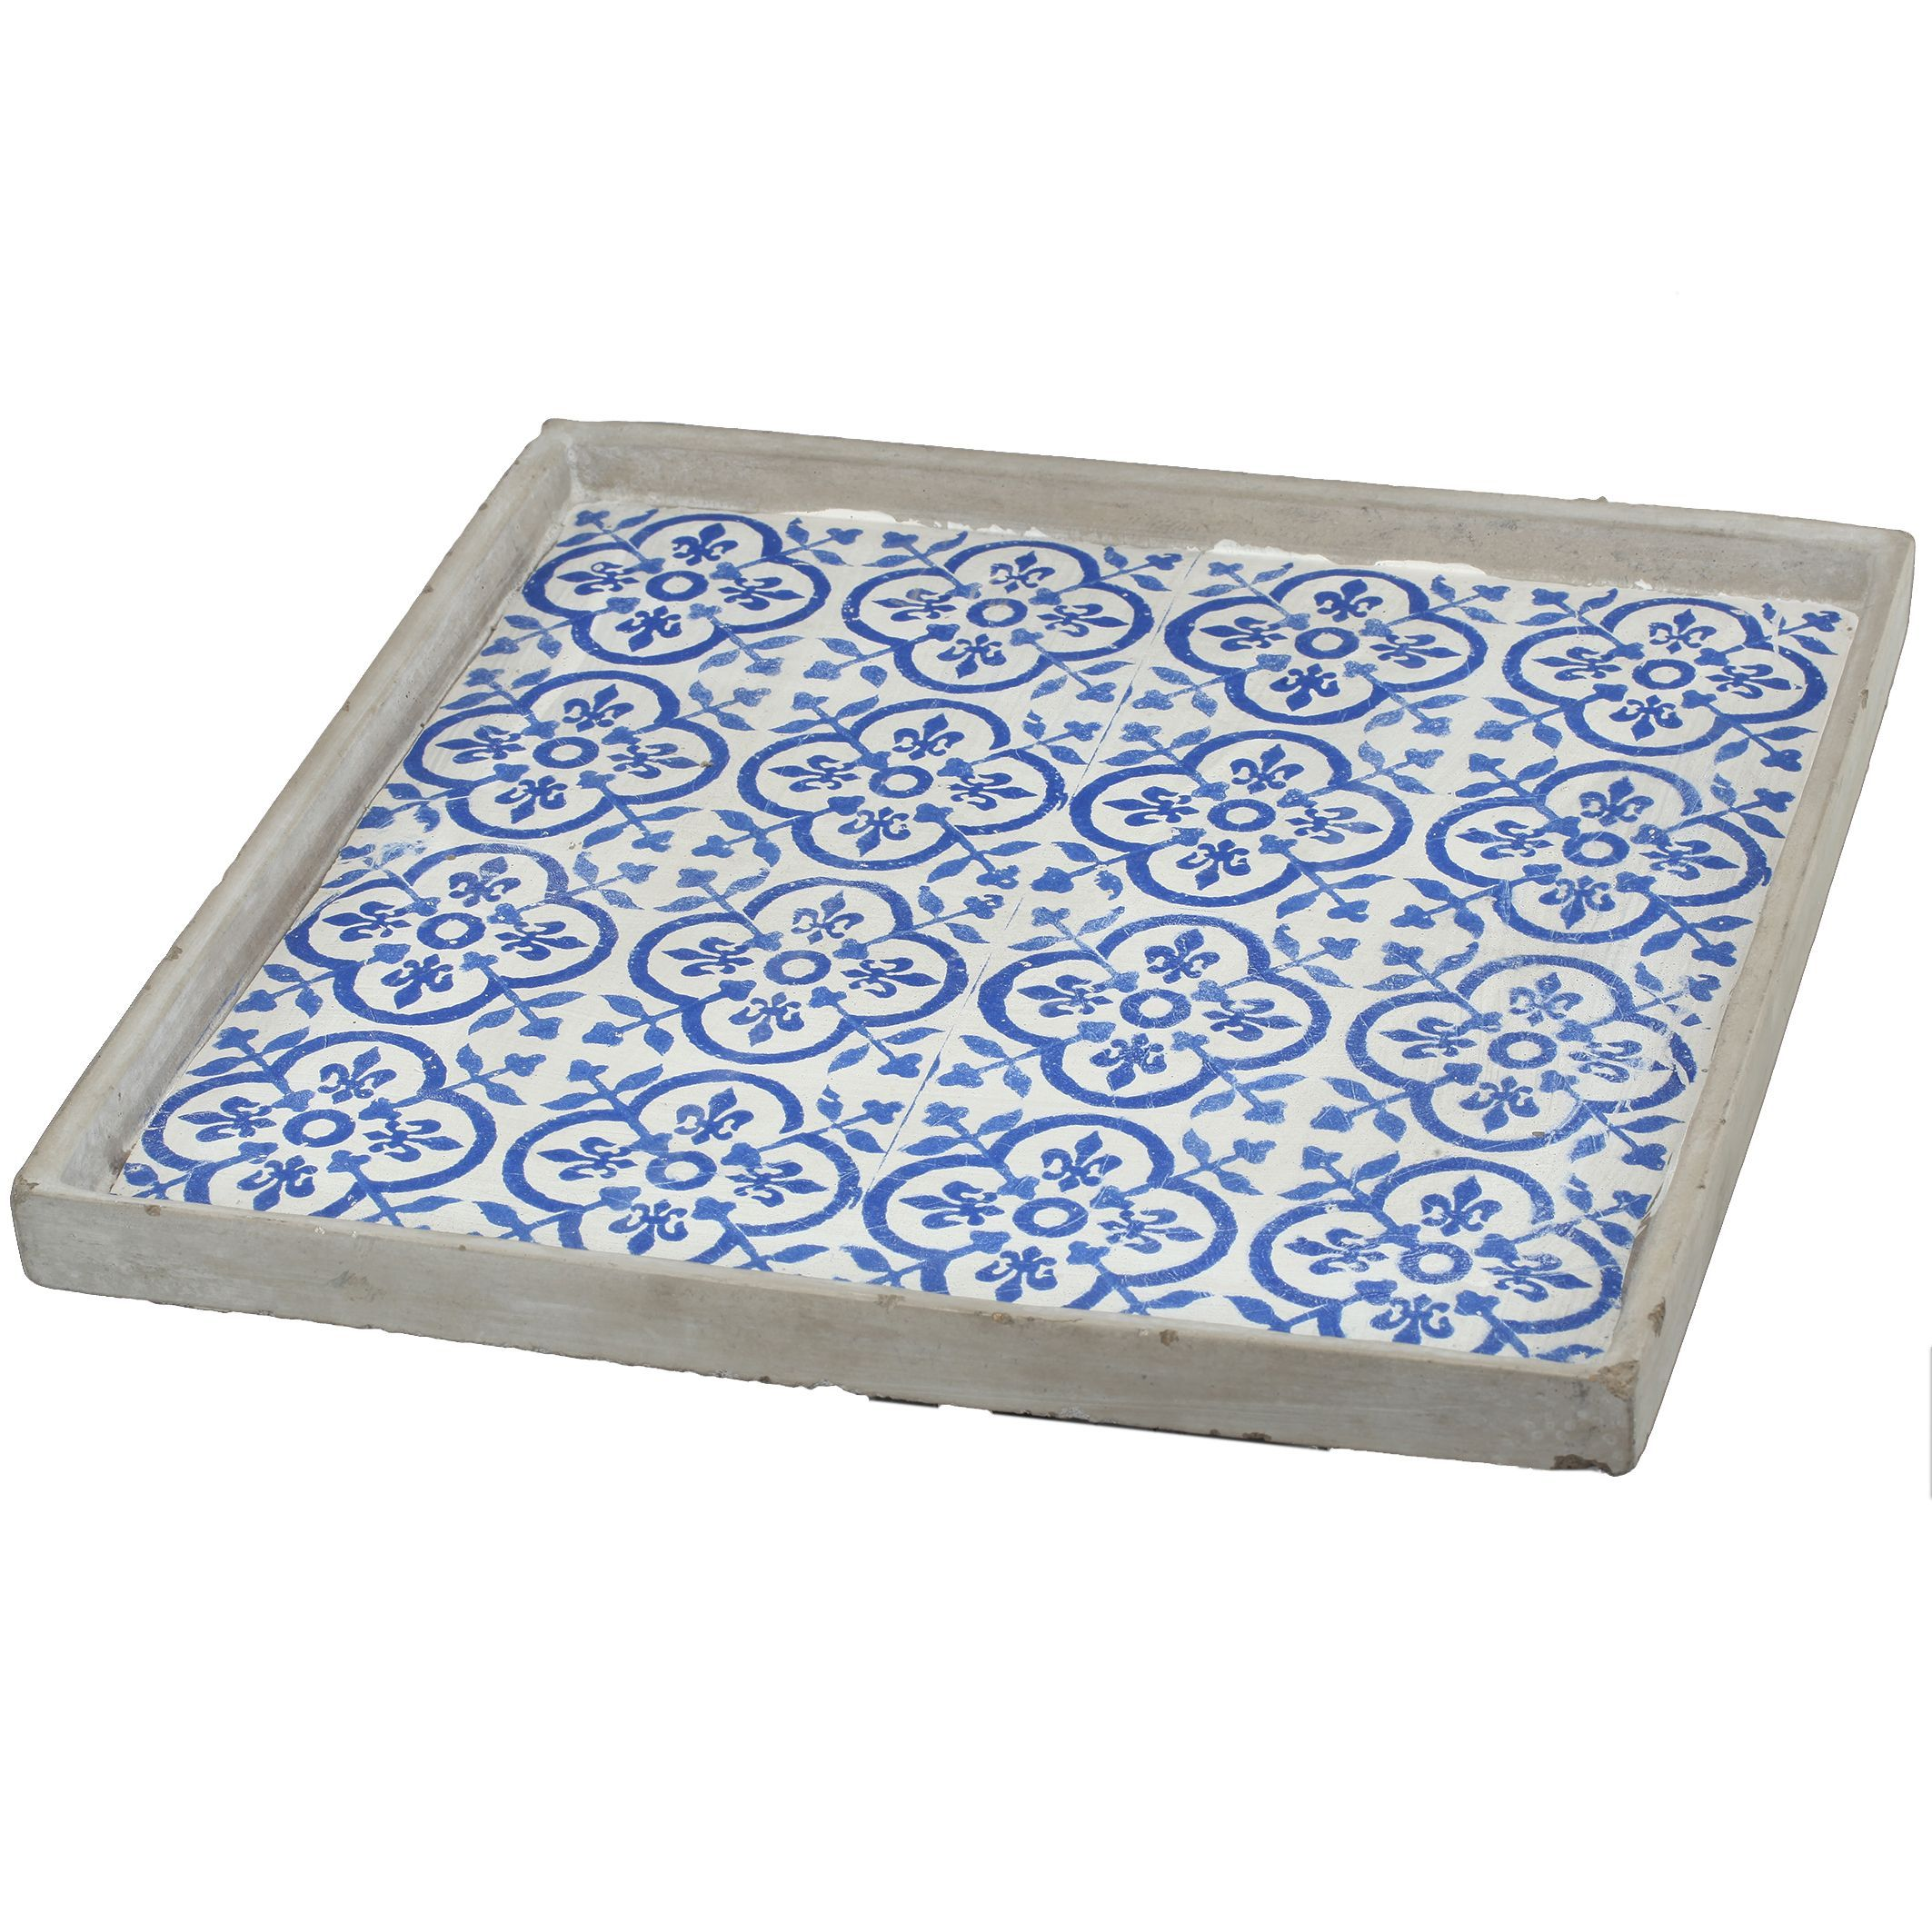 White Decorative Tray Winston Blue And White Wood 16Inch X 16Inch Large Square